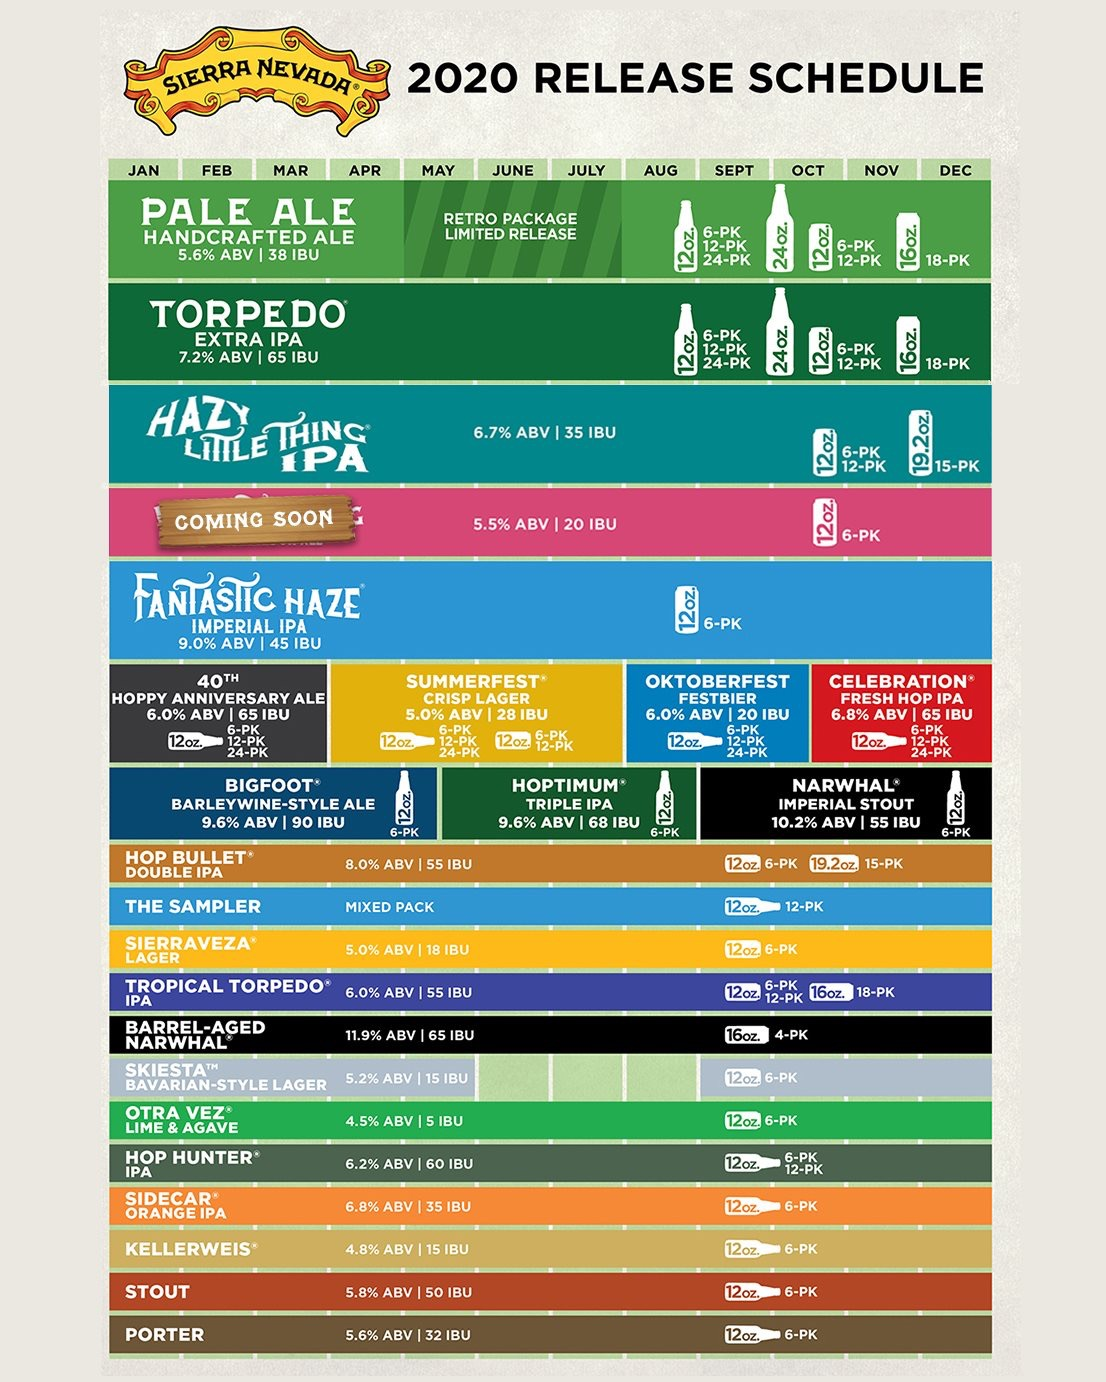 Sierra Nevada Brewing 2020 Beer Release Calendar